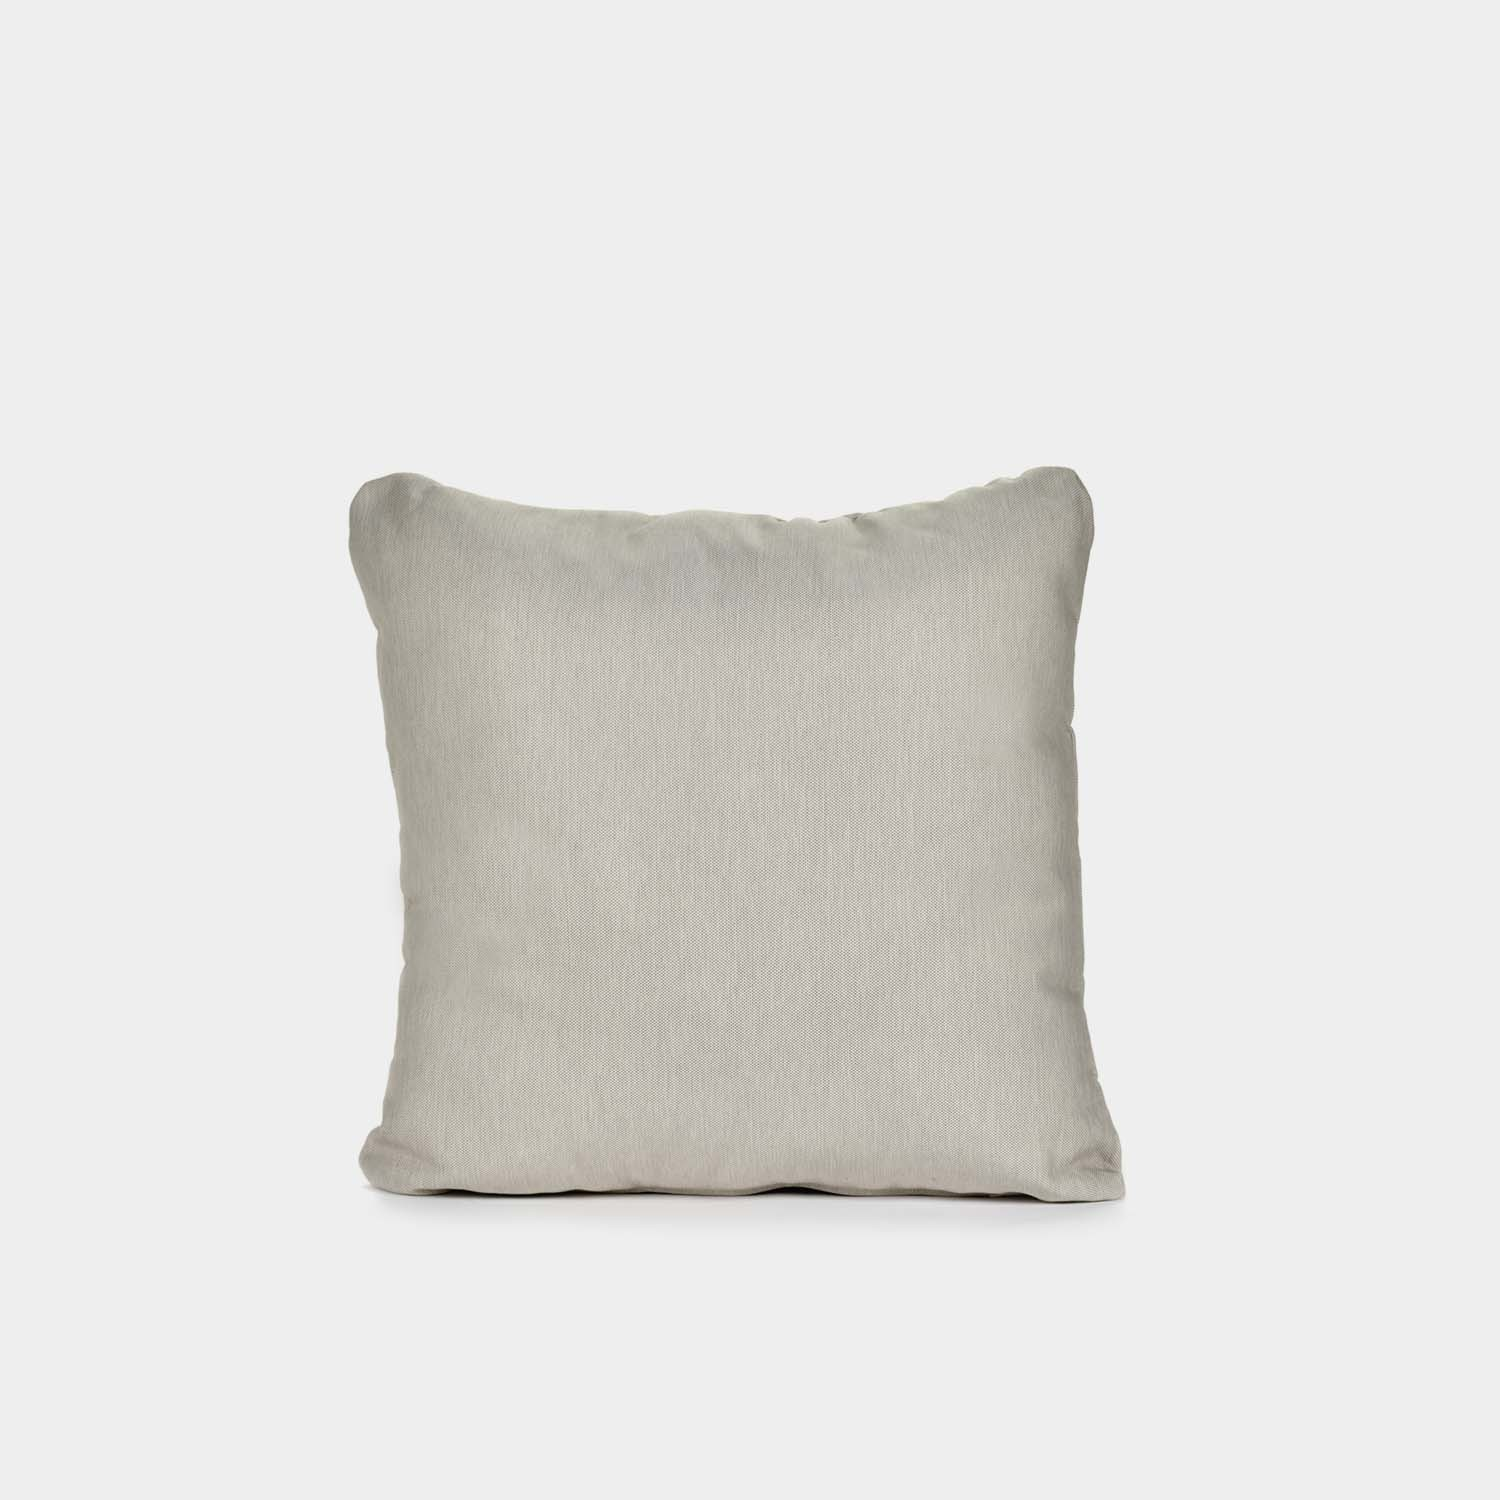 Decorative Cushion, Square, Outdoor, Beige